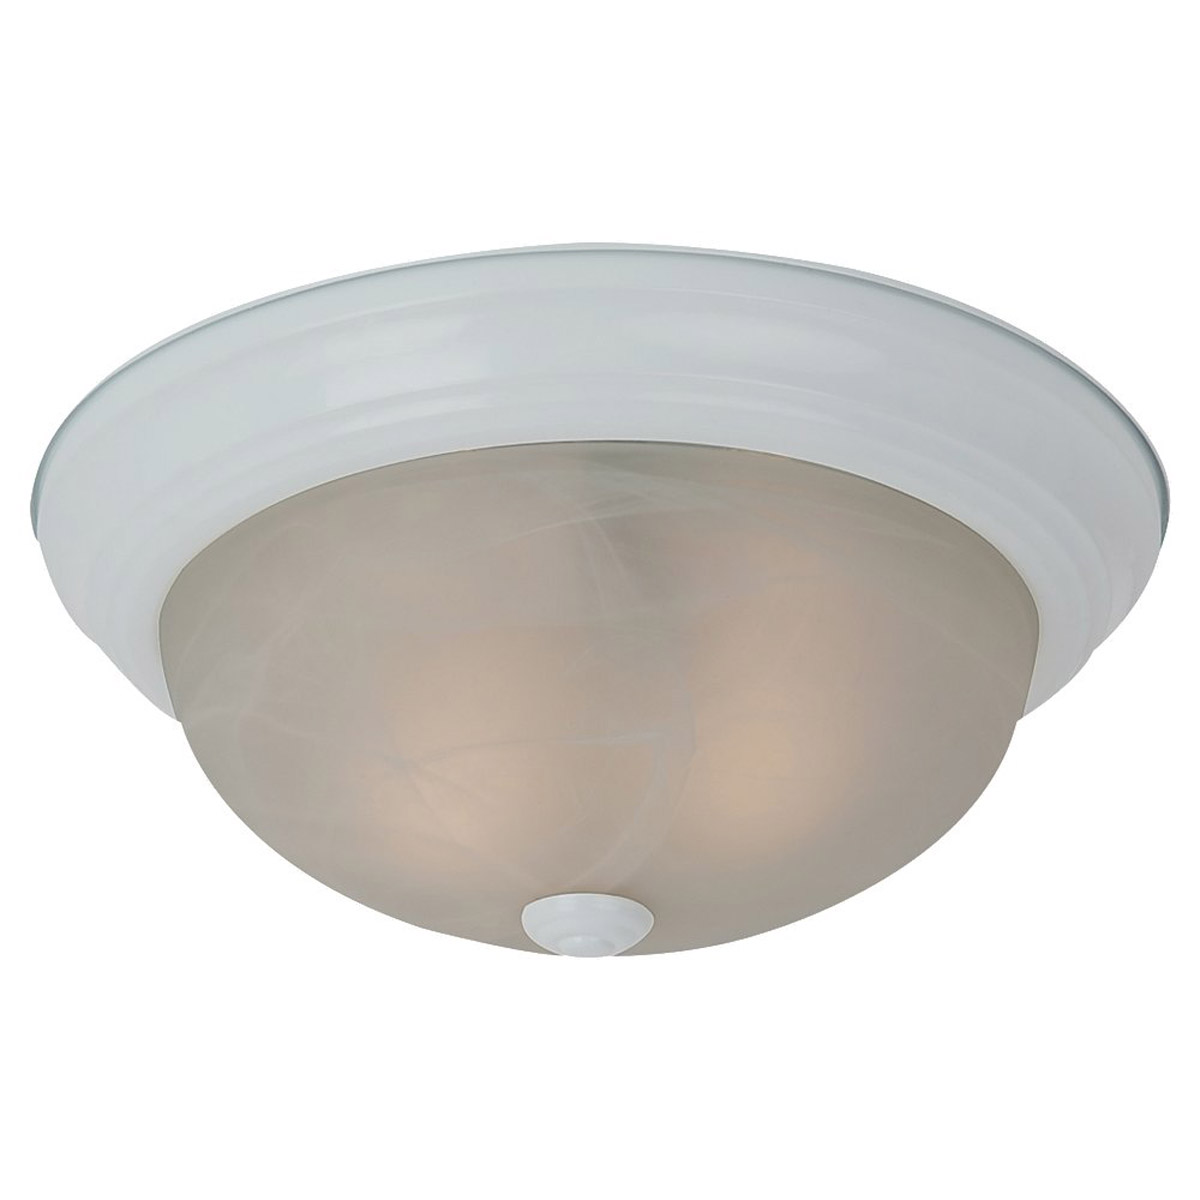 Sea Gull Lighting Windgate 1 Light Flush Mount in White 75940BLE-15